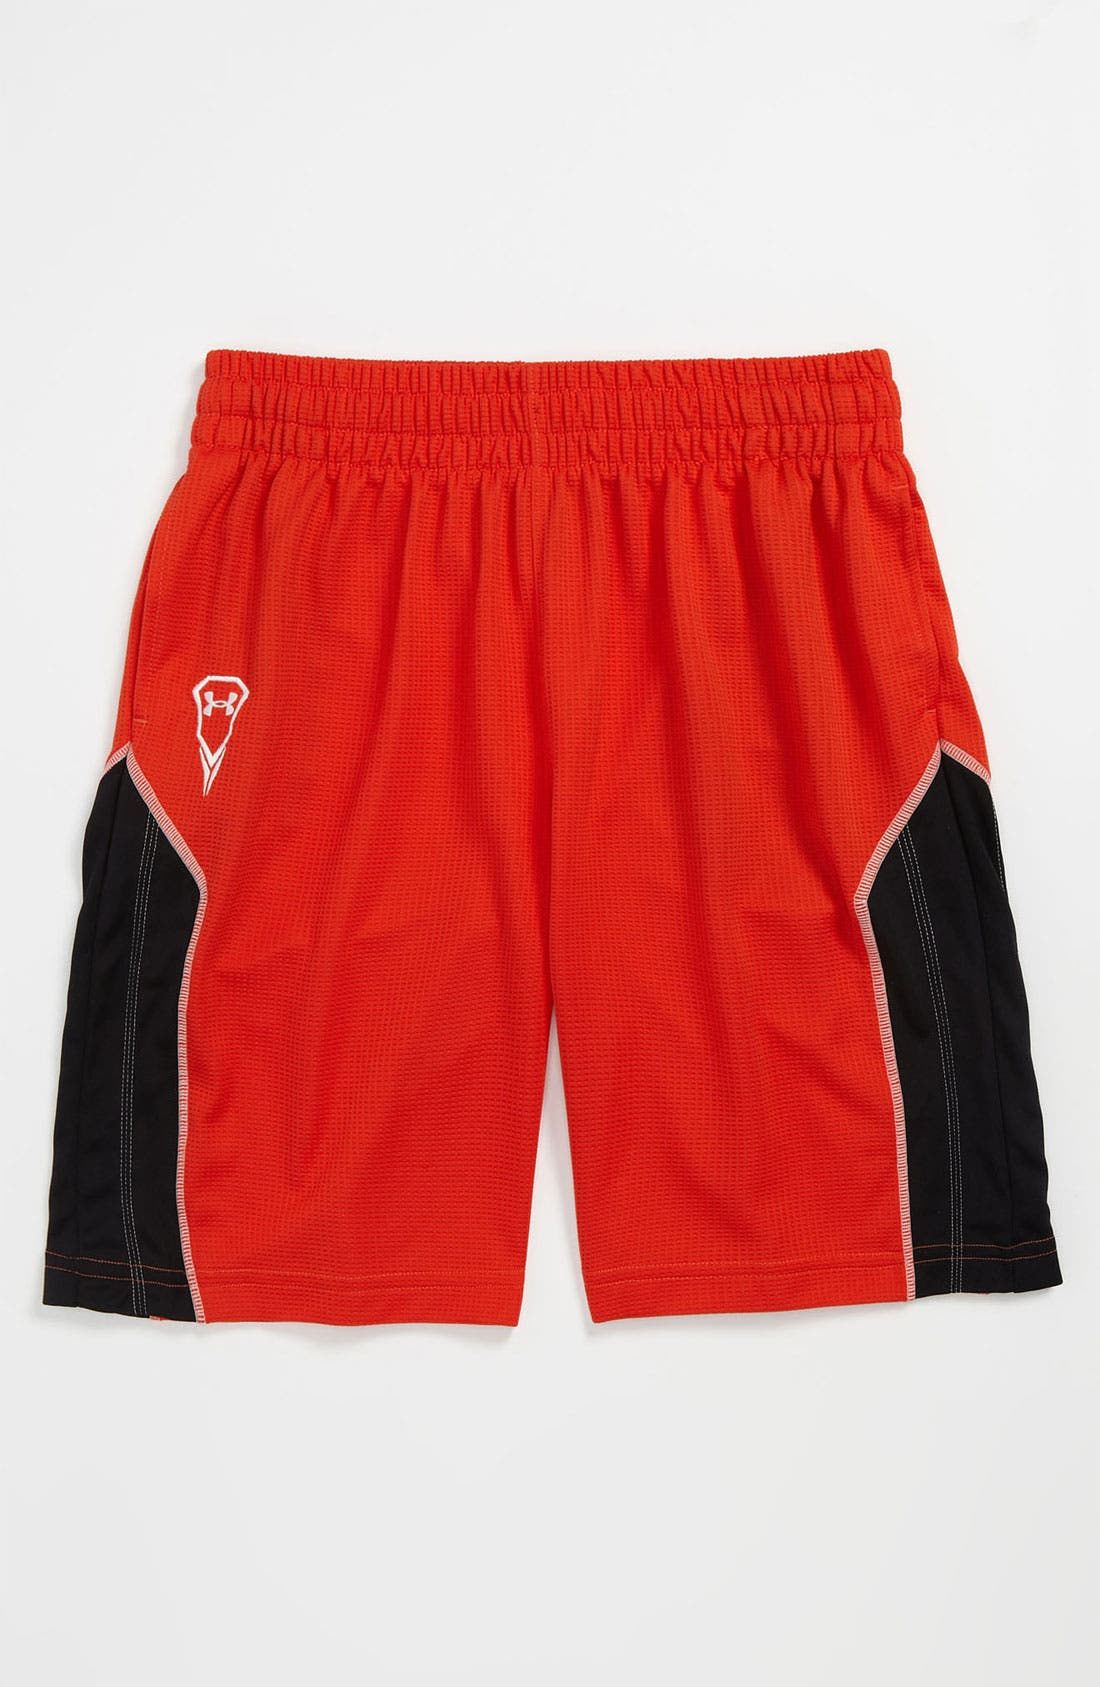 Alternate Image 1 Selected - Under Armour Shorts (Big Boys)